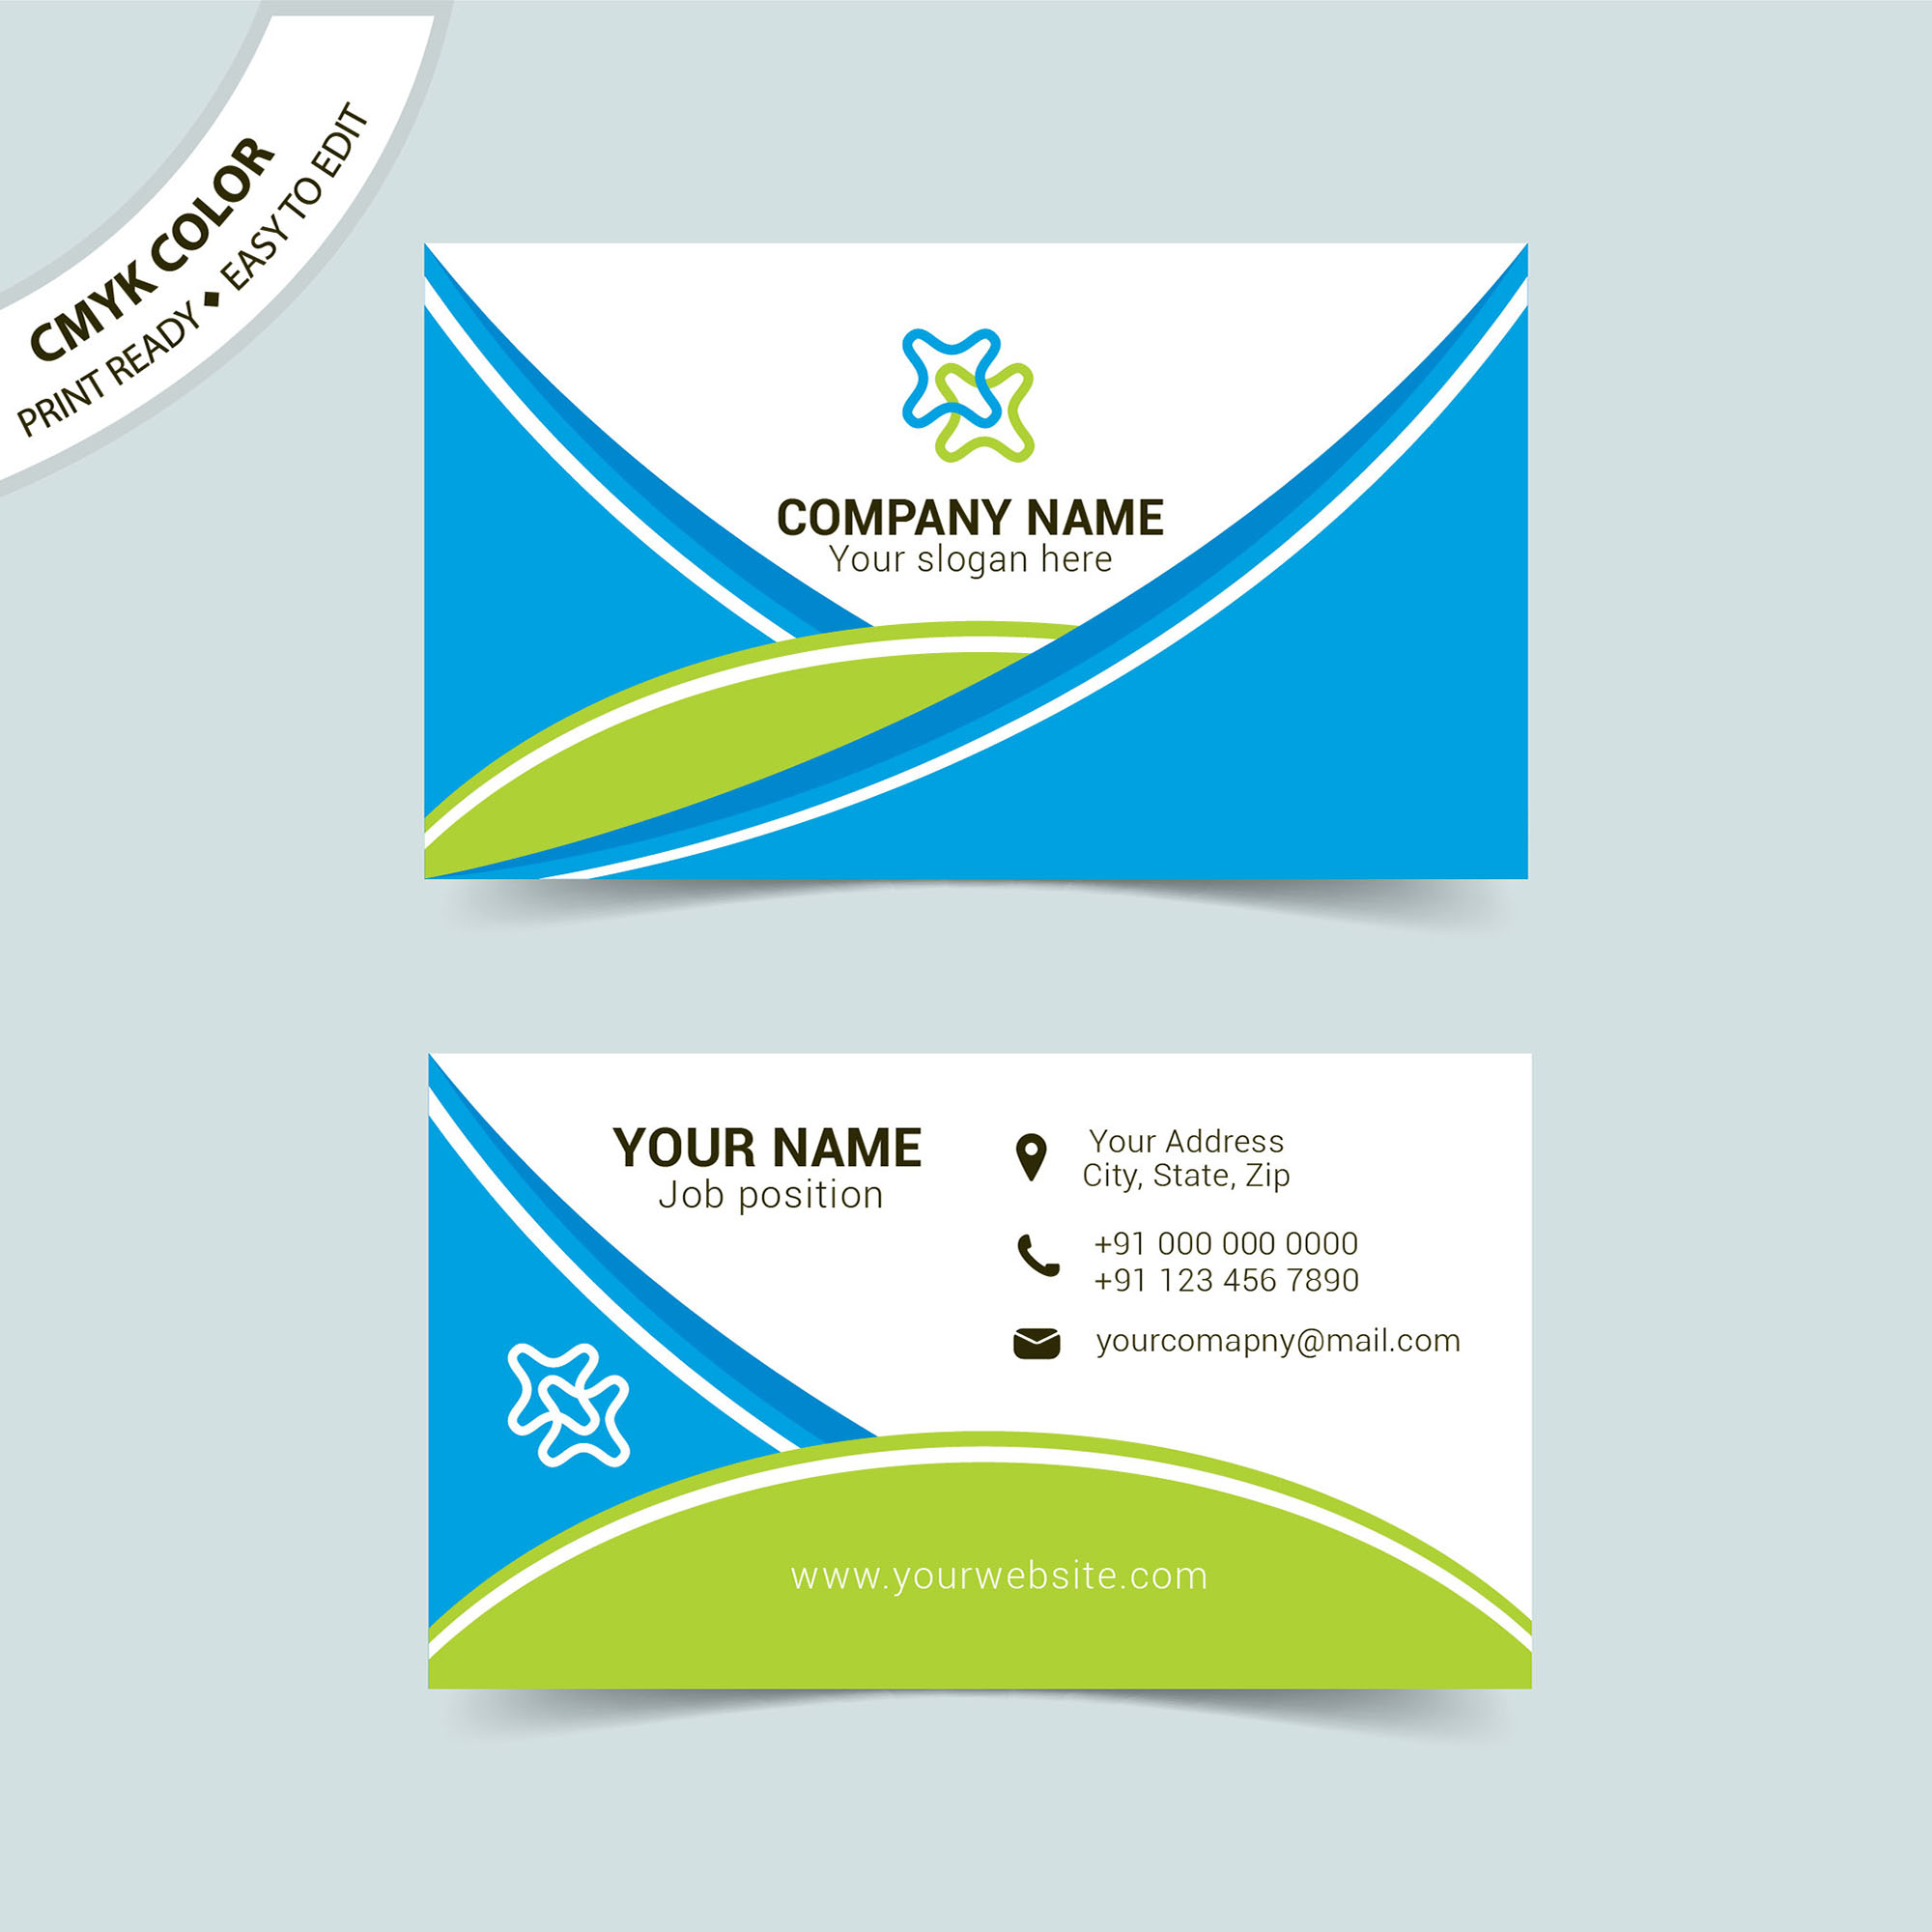 Creative business card vector template free download wisxi business card business cards business card design business card template design templates wajeb Gallery